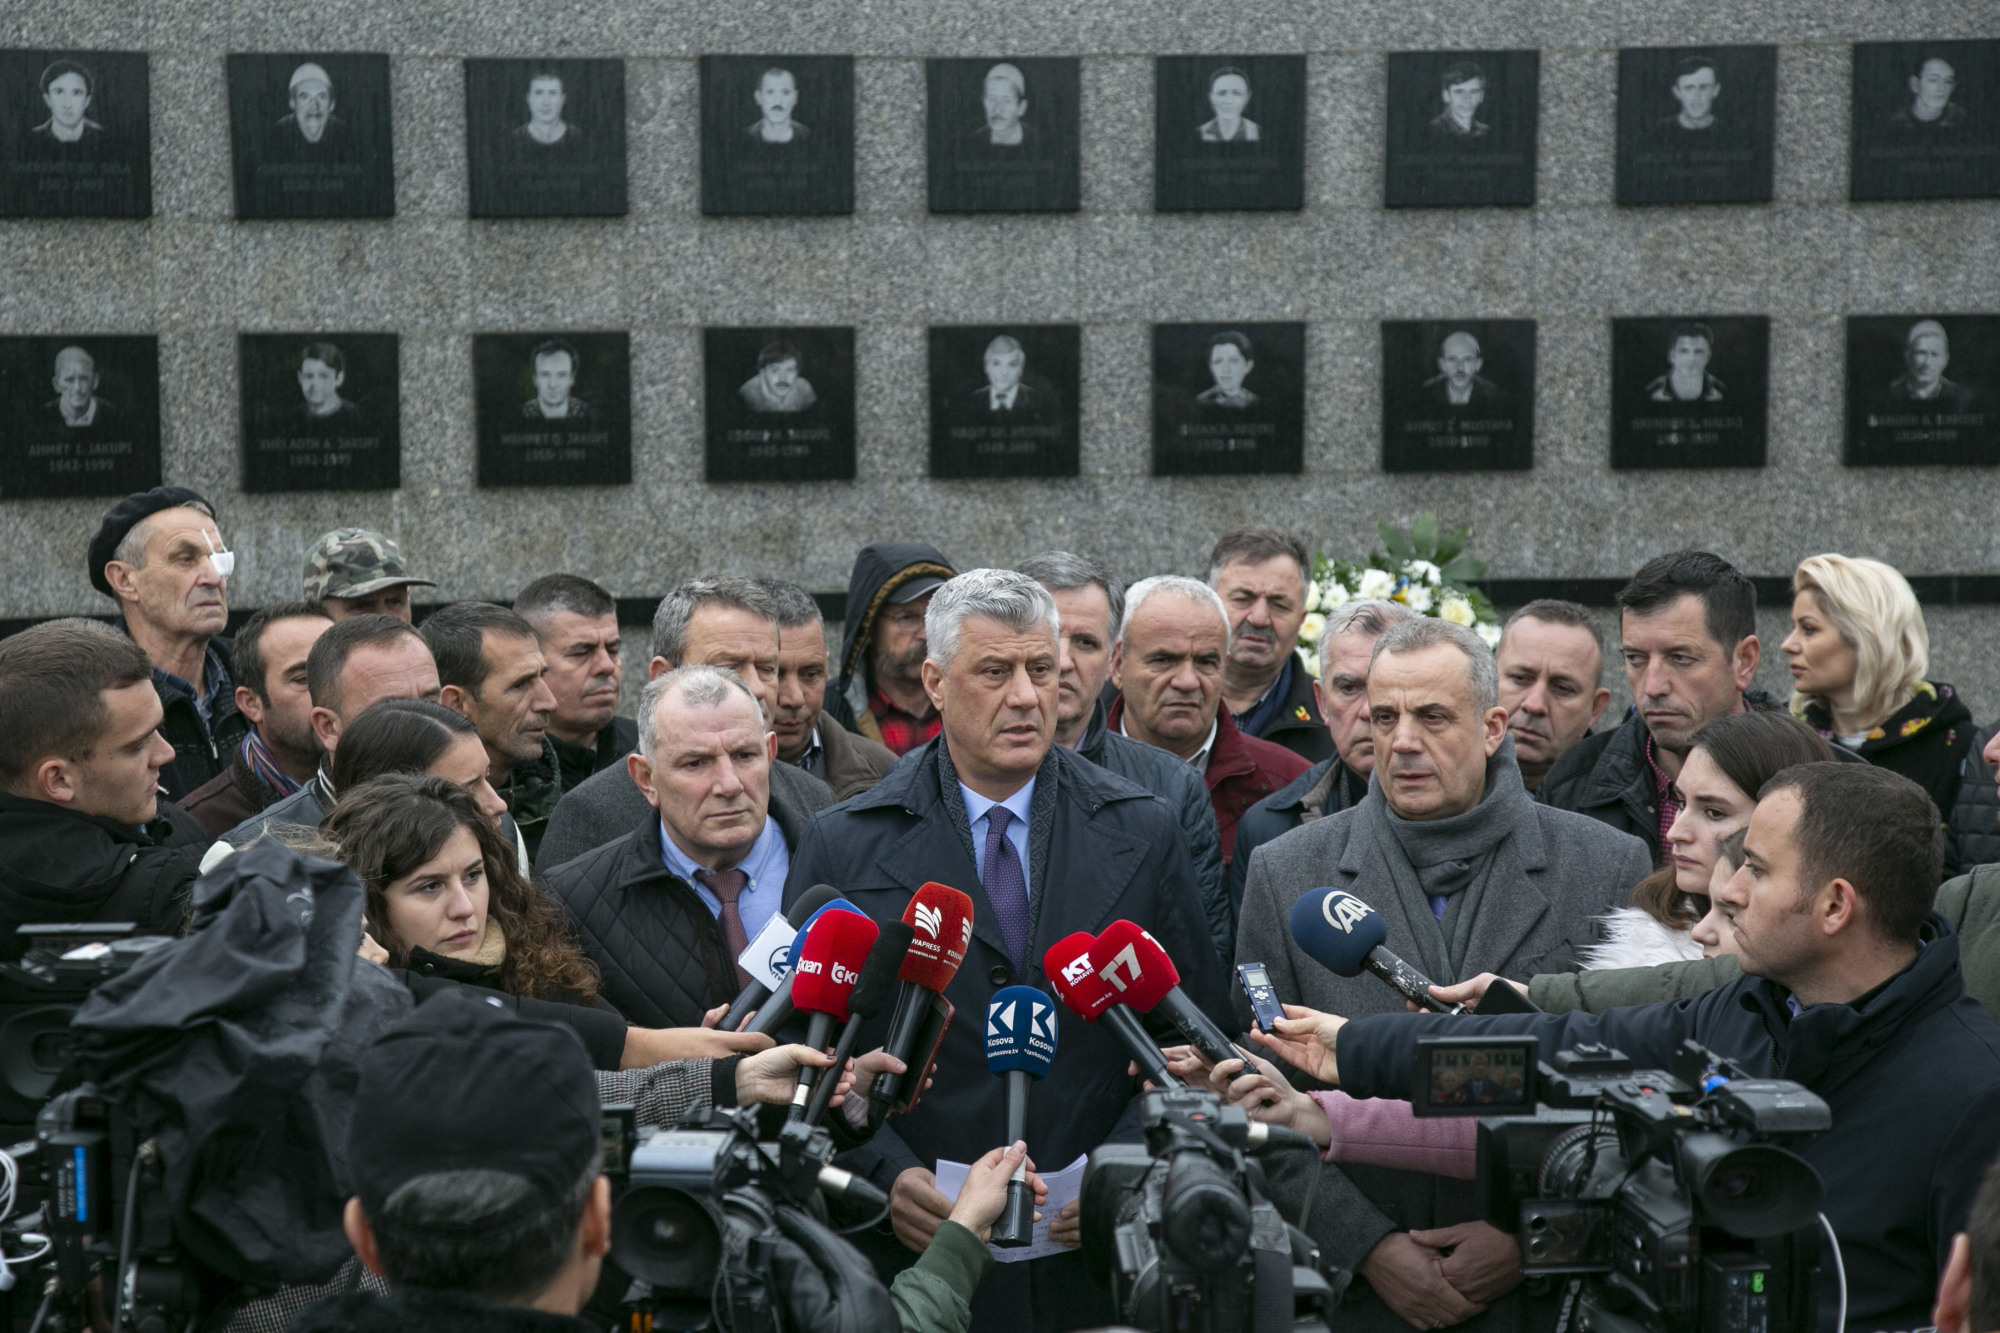 Kosovo President Hashim Thaci visits the Recak memorial on Dec. 10, where he called on Serbia to apologize for the genocide on his country as the first step toward a peaceful relationship. | AP